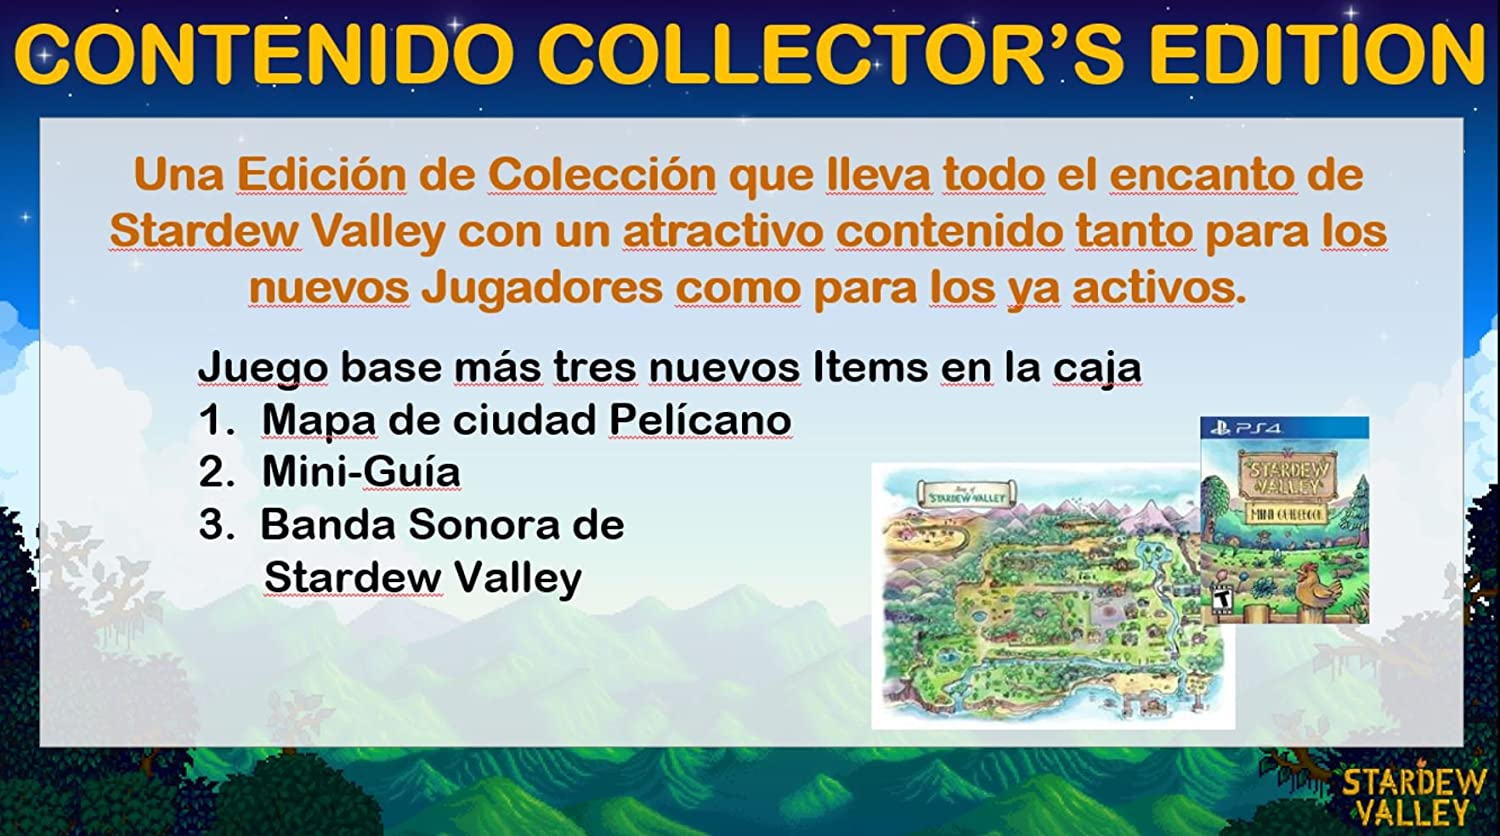 Stardew Valley Collector´s Edition: Amazon.es: Videojuegos